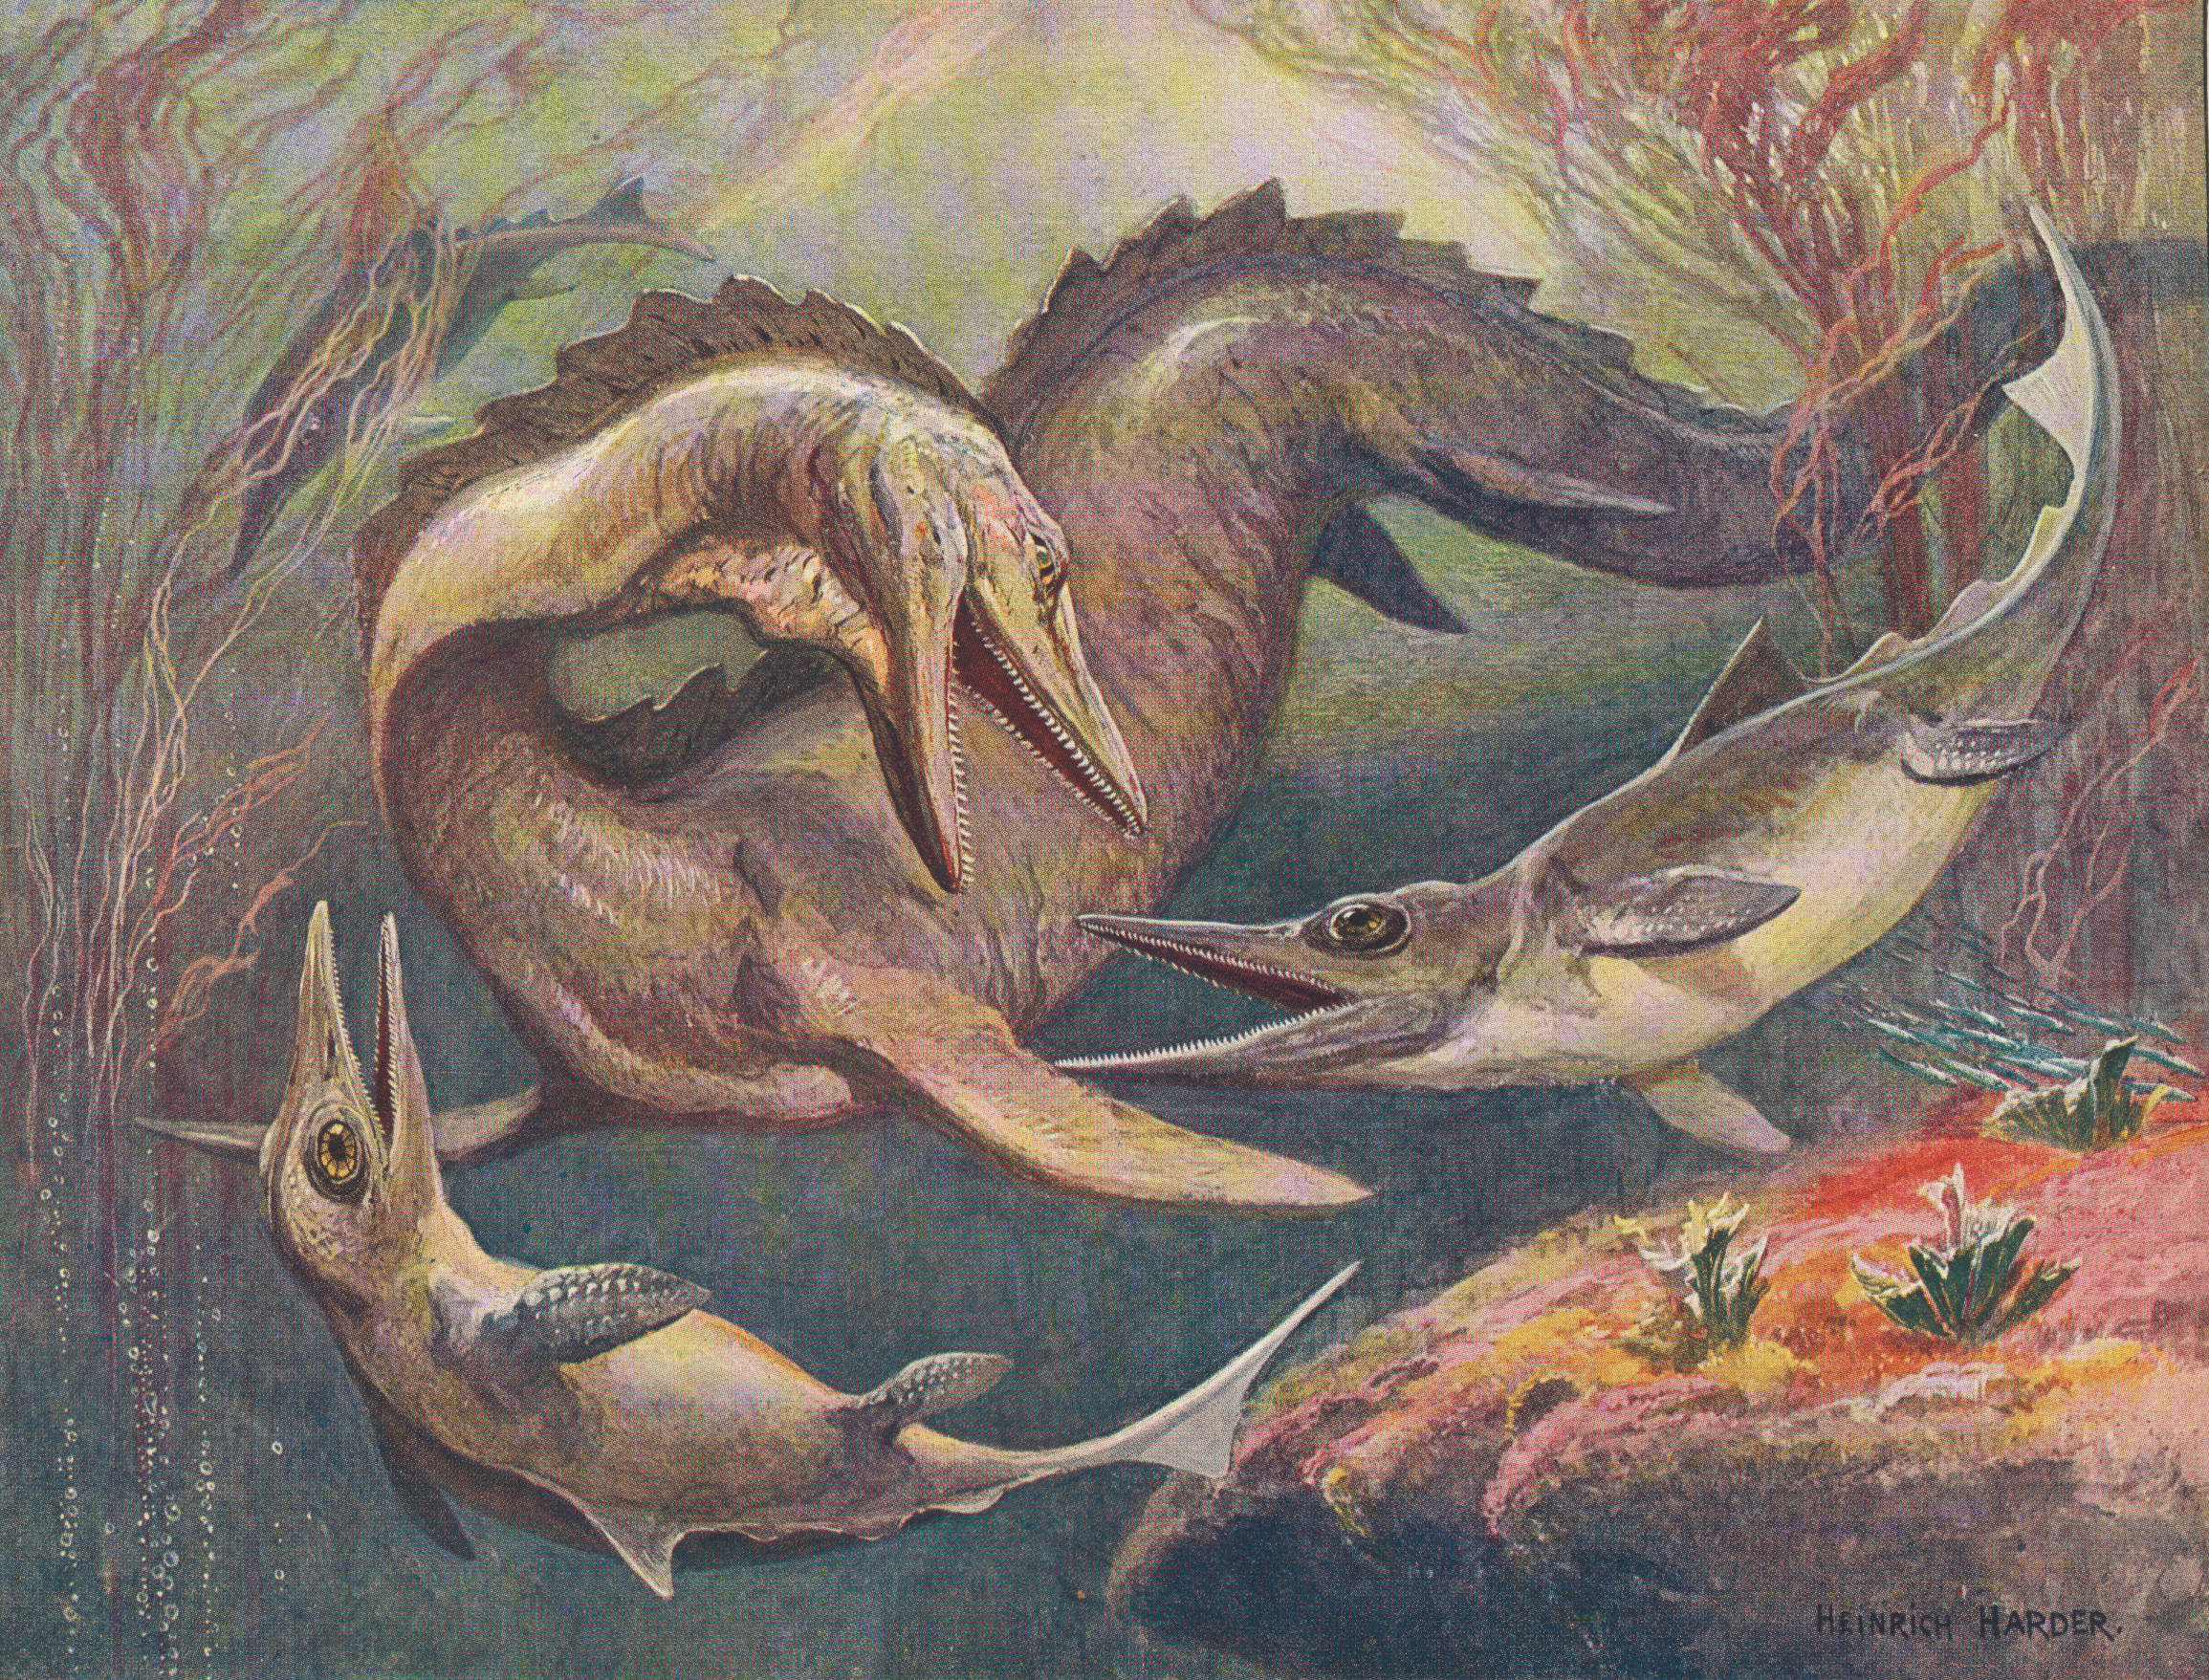 Fossil Painting Art